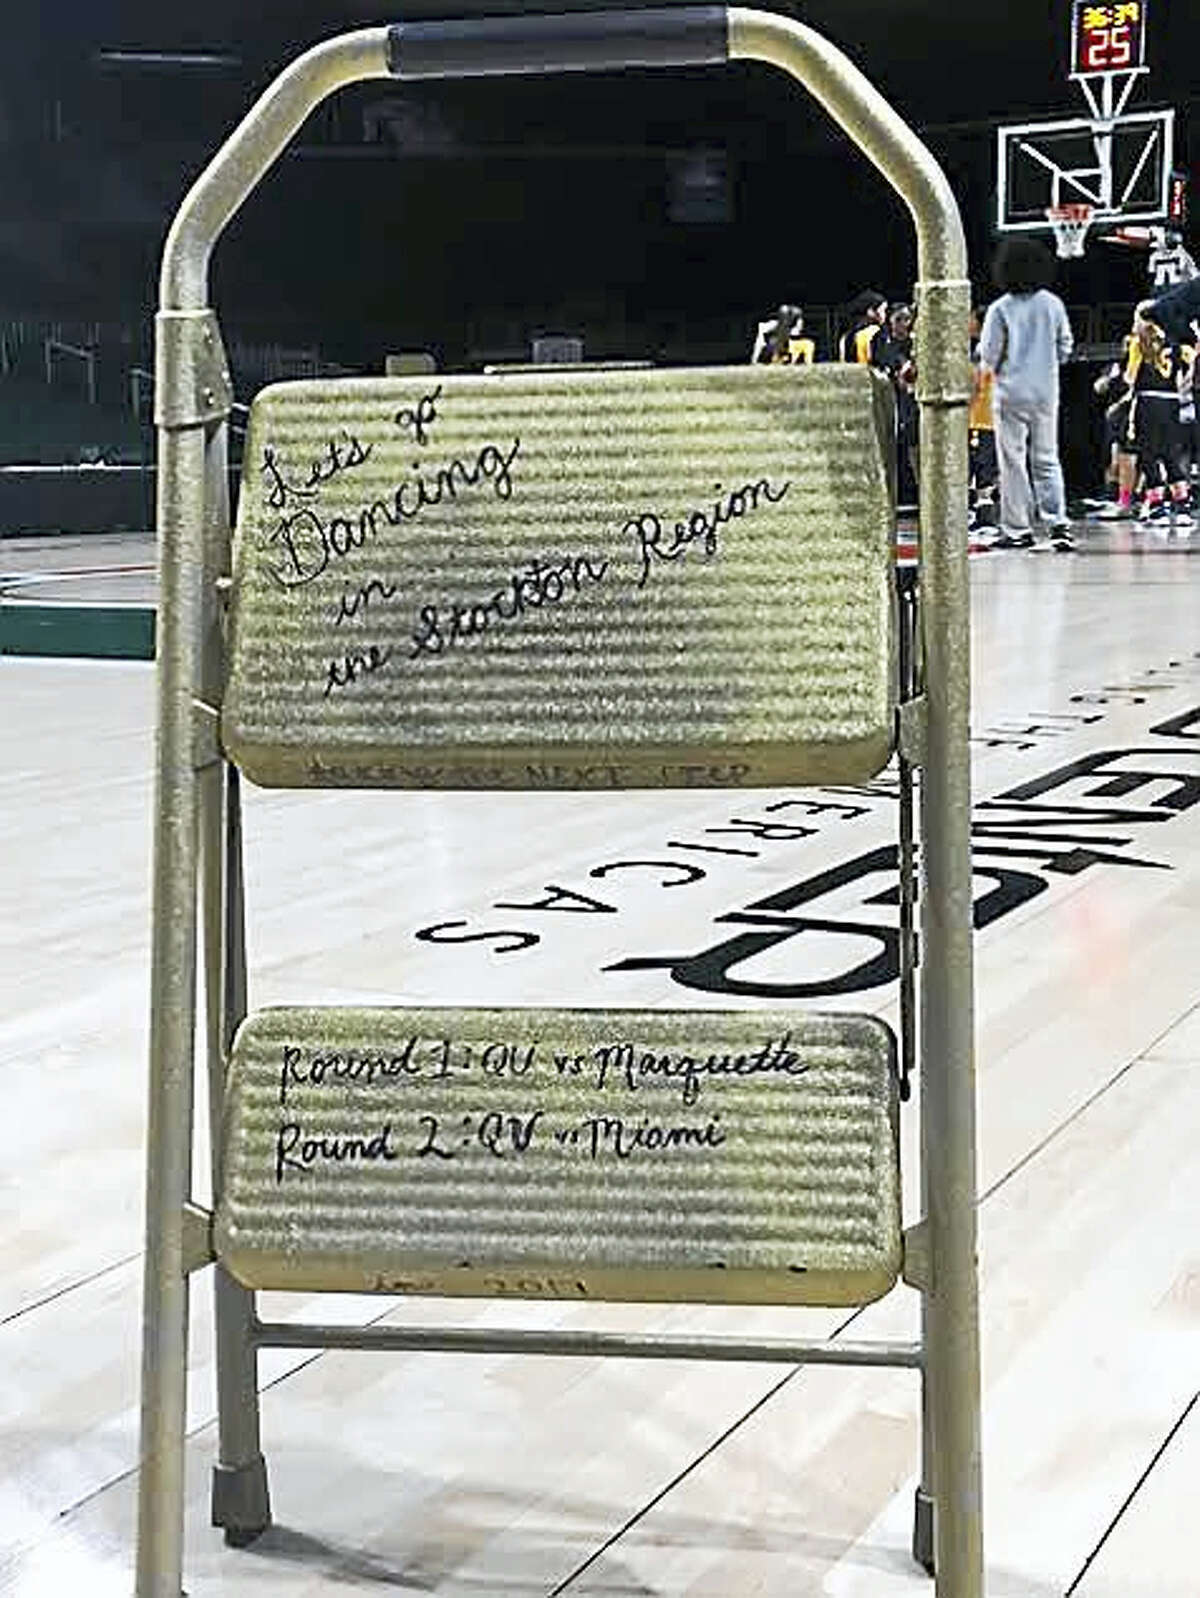 This step stool provides inspiration for the Quinnipiac women's basketball team as it climbs toward its goals.